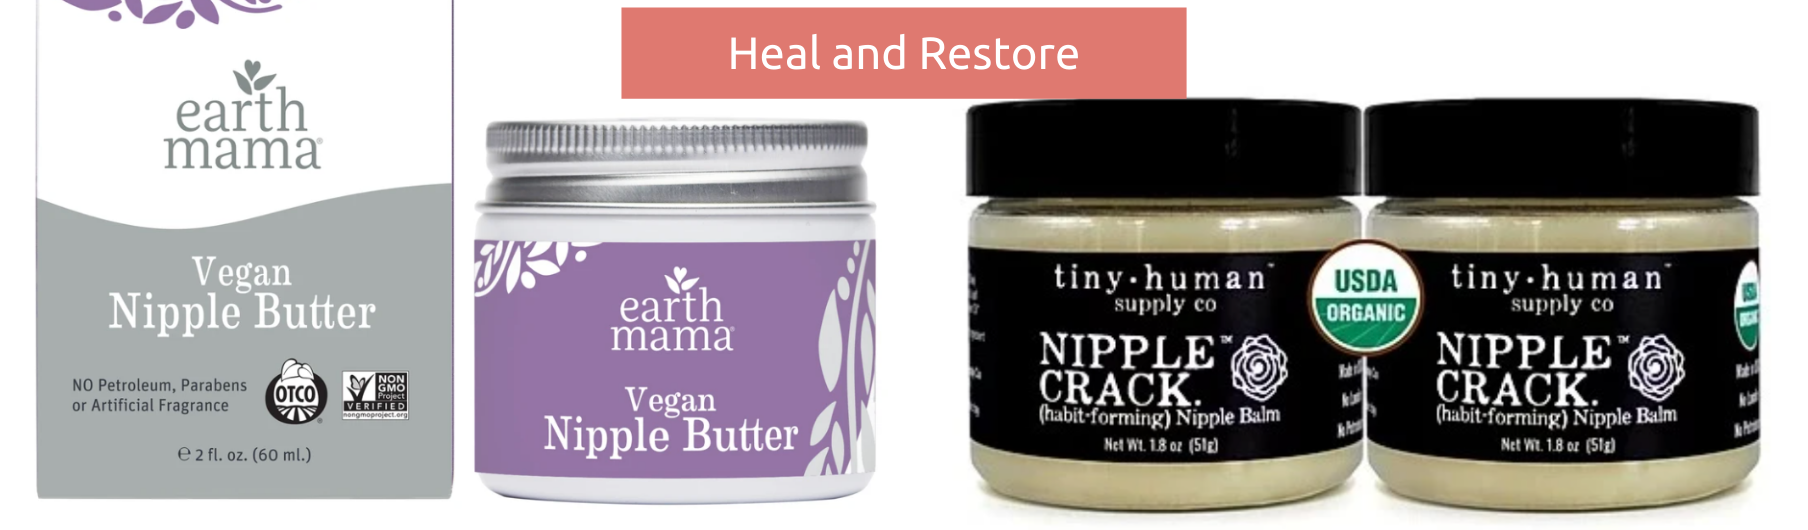 Heal and Restore Your Skin with Two Nipple Butters from BeauGen